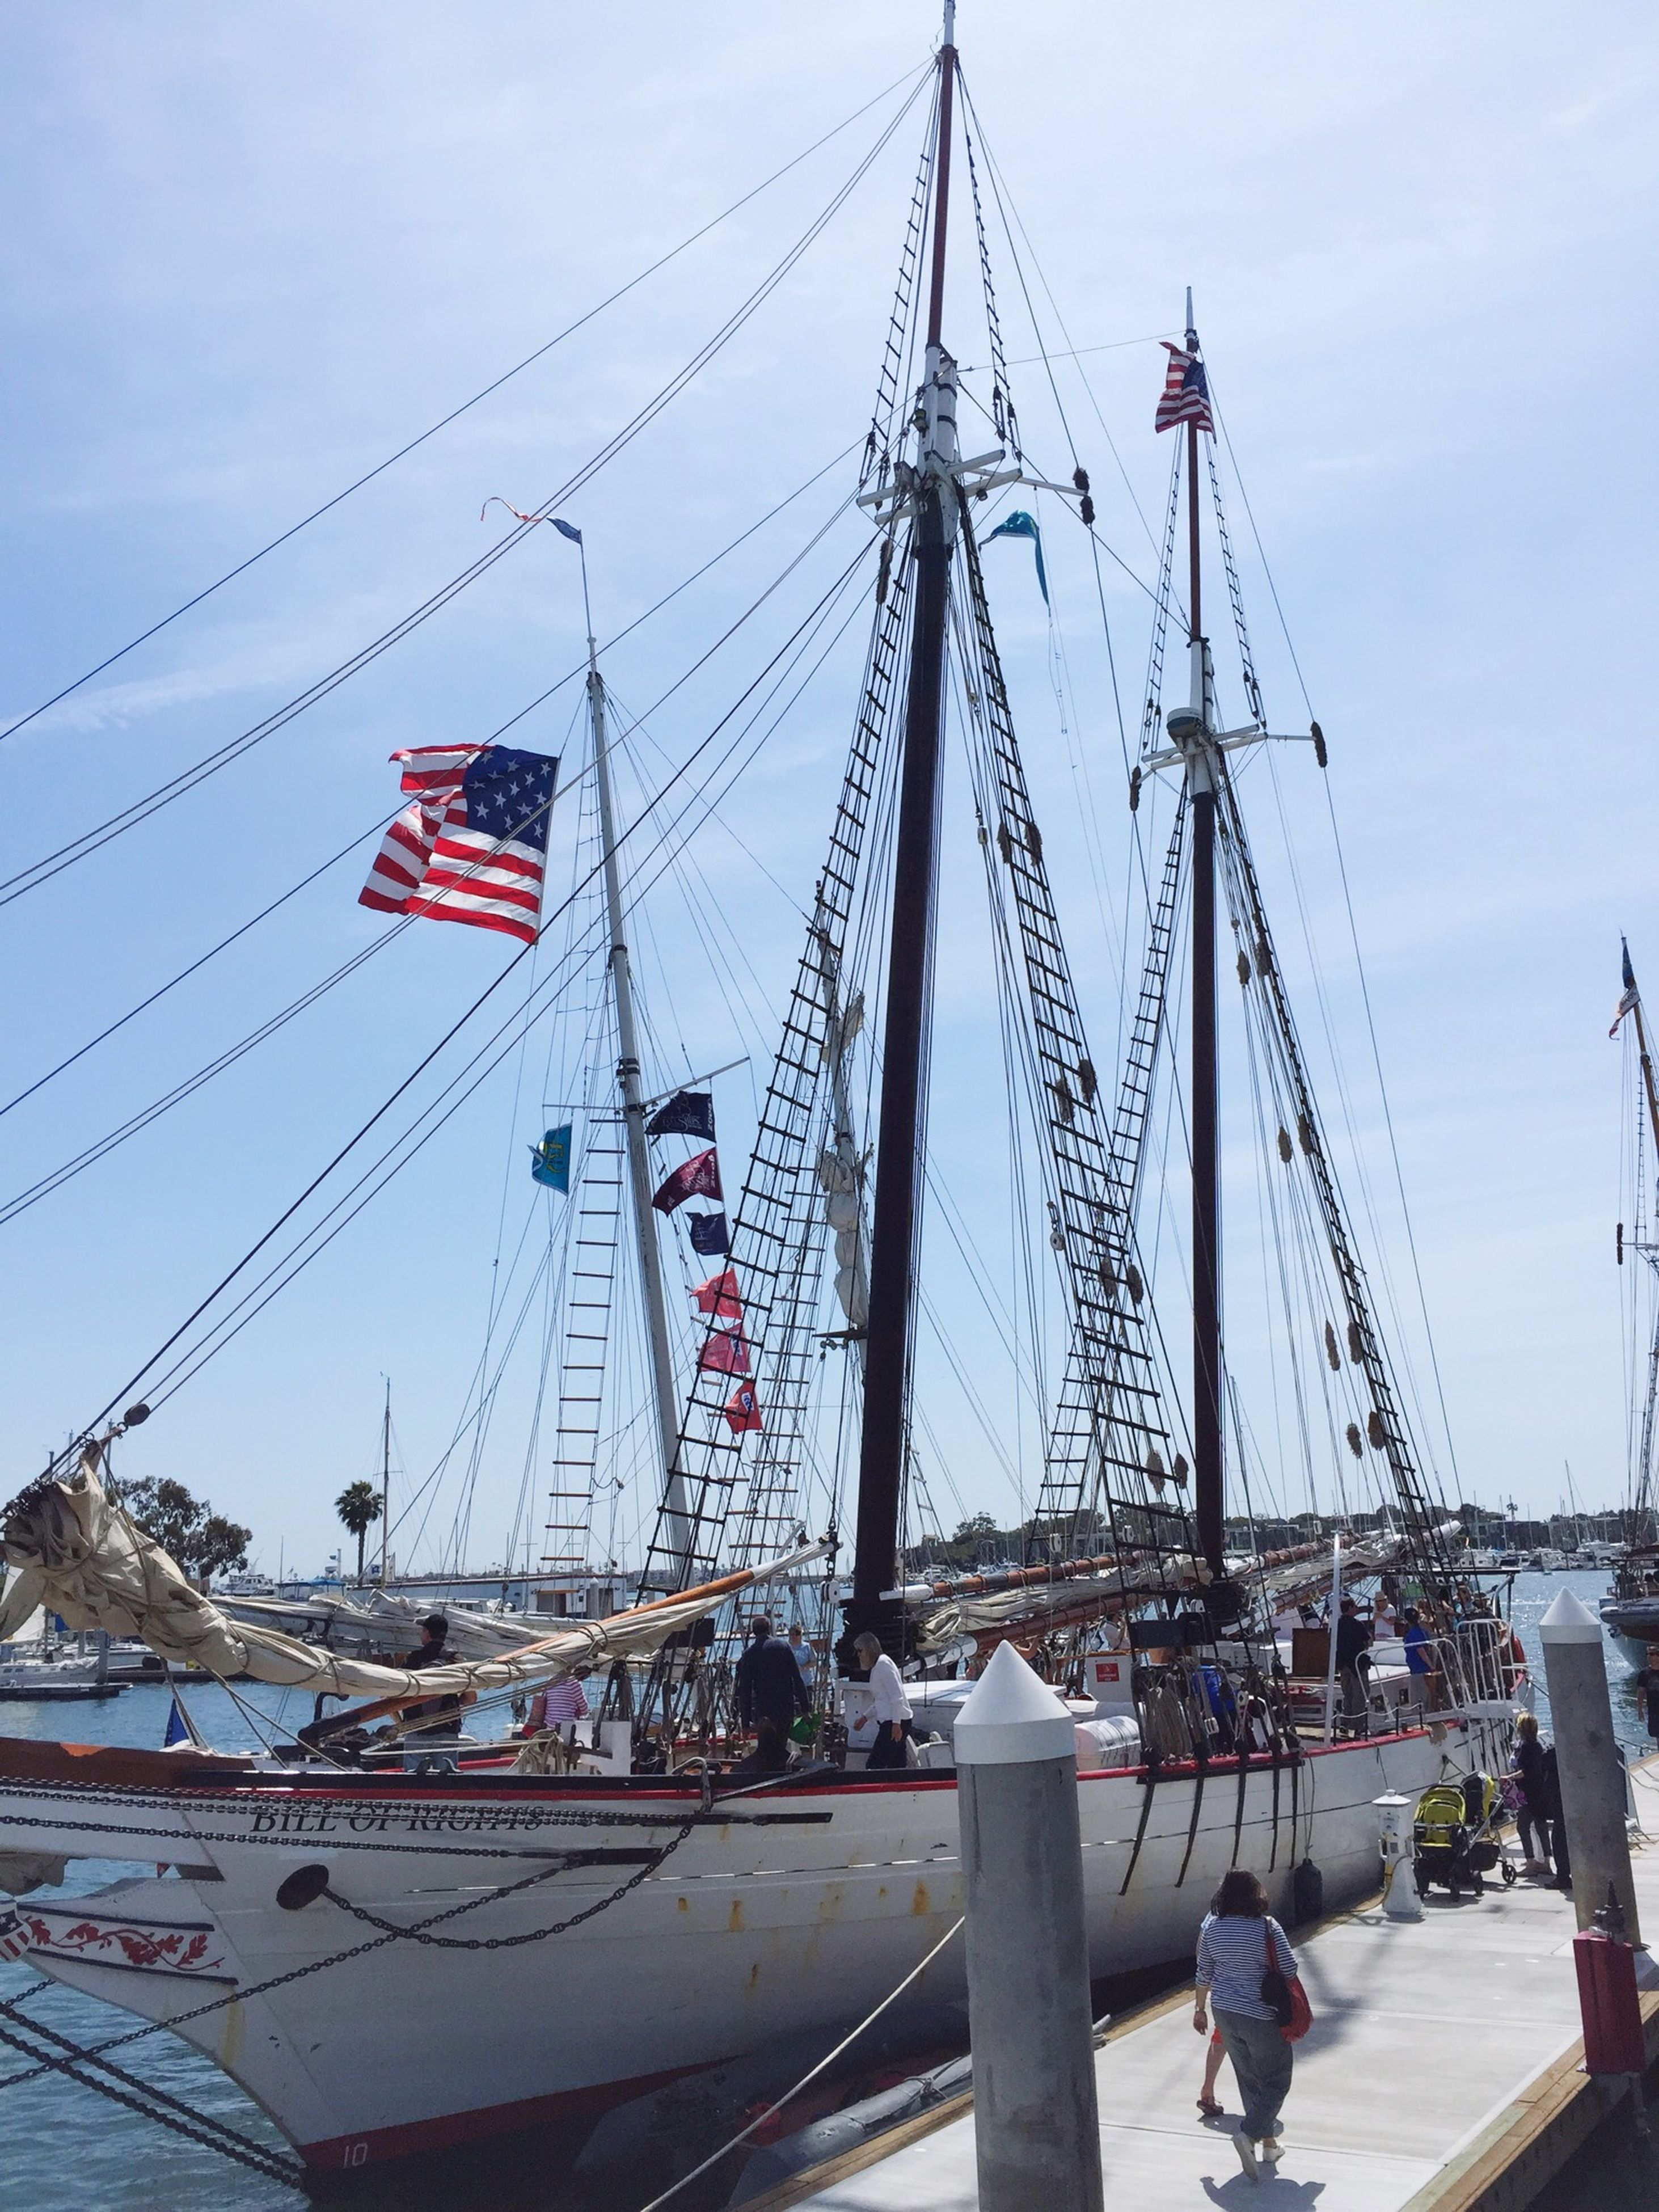 transportation, nautical vessel, mode of transport, mast, sky, flag, travel, large group of people, harbor, men, boat, sailboat, day, built structure, leisure activity, outdoors, travel destinations, low angle view, incidental people